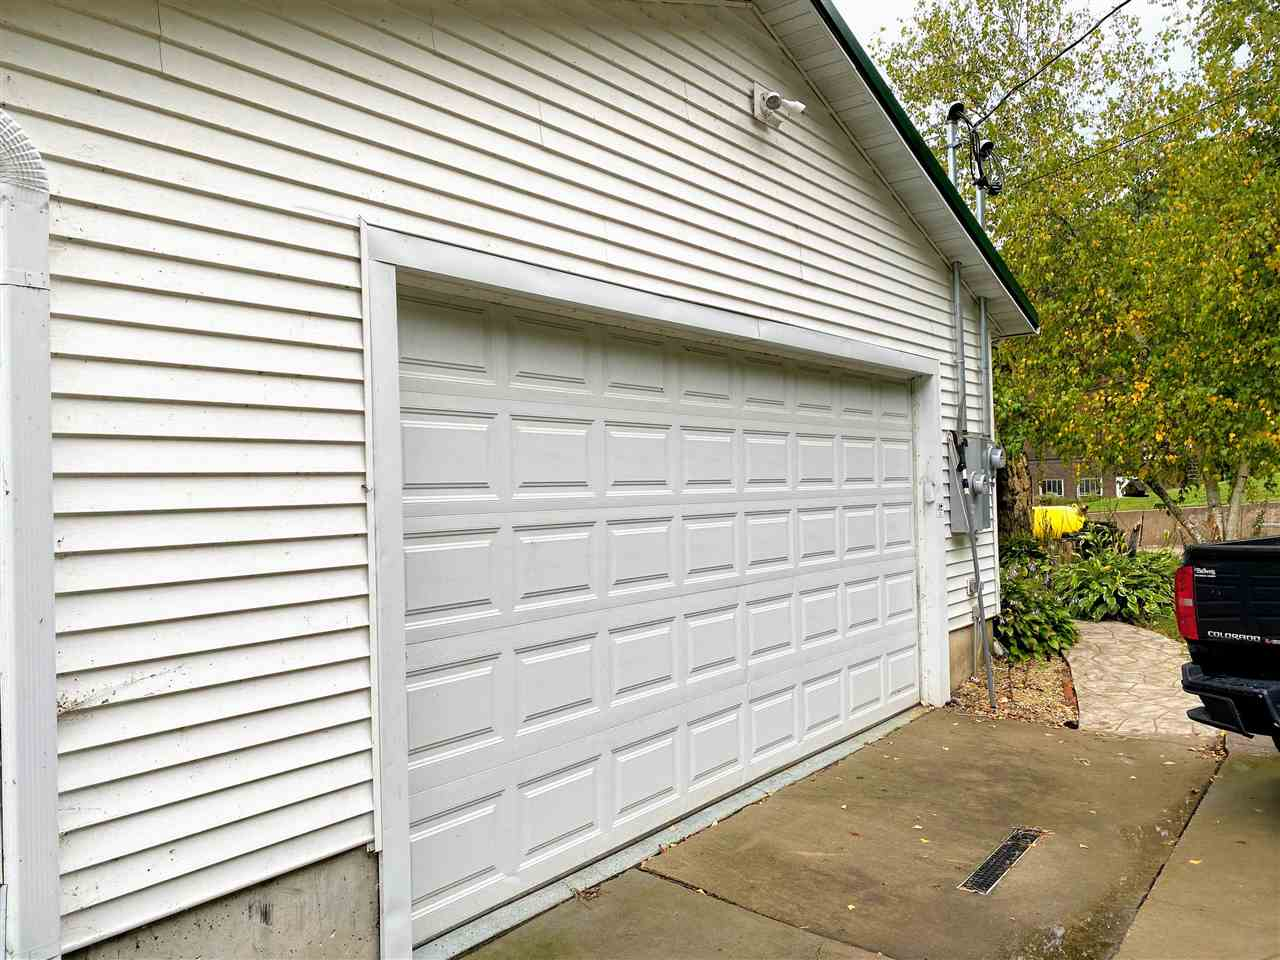 134 North St, Marquette, Iowa 52158, 3 Bedrooms Bedrooms, ,2 BathroomsBathrooms,Single Family,For Sale,134 North St,2,1894512